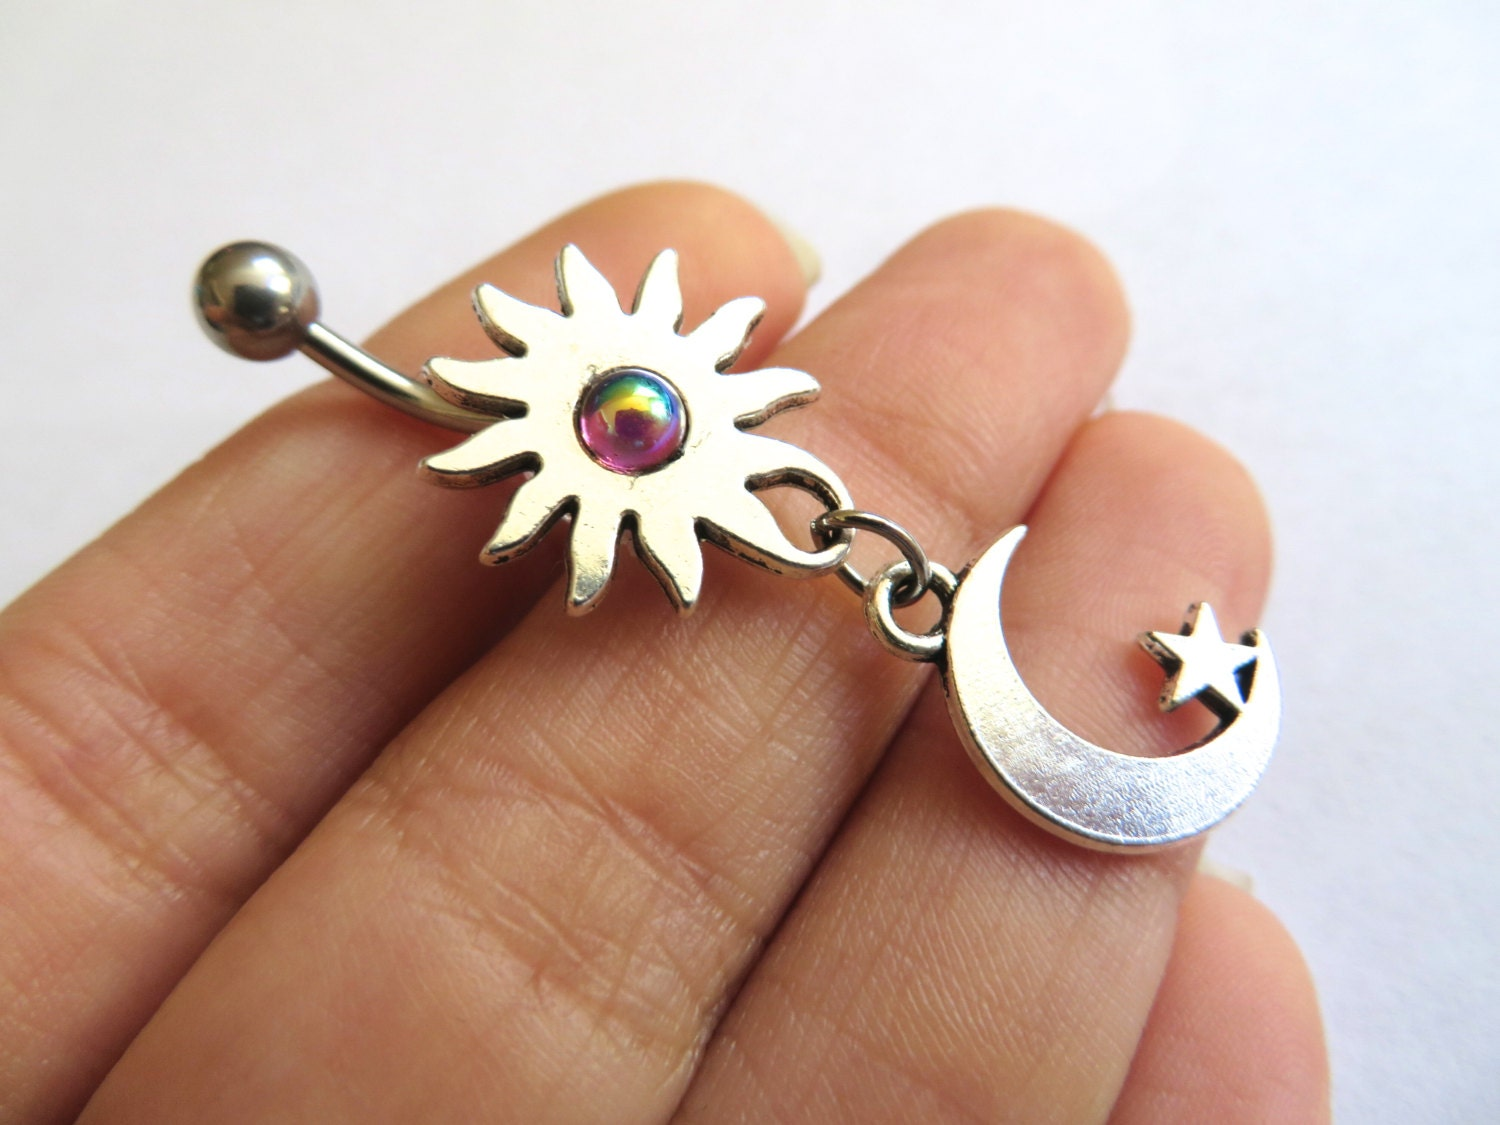 Belly Button Ring Jewelry Celestial Moon Star And Sun Blue Opal Rainbow Garnet Stone Belly Button Ring Jewelry Charm Dangle Navel Piercing